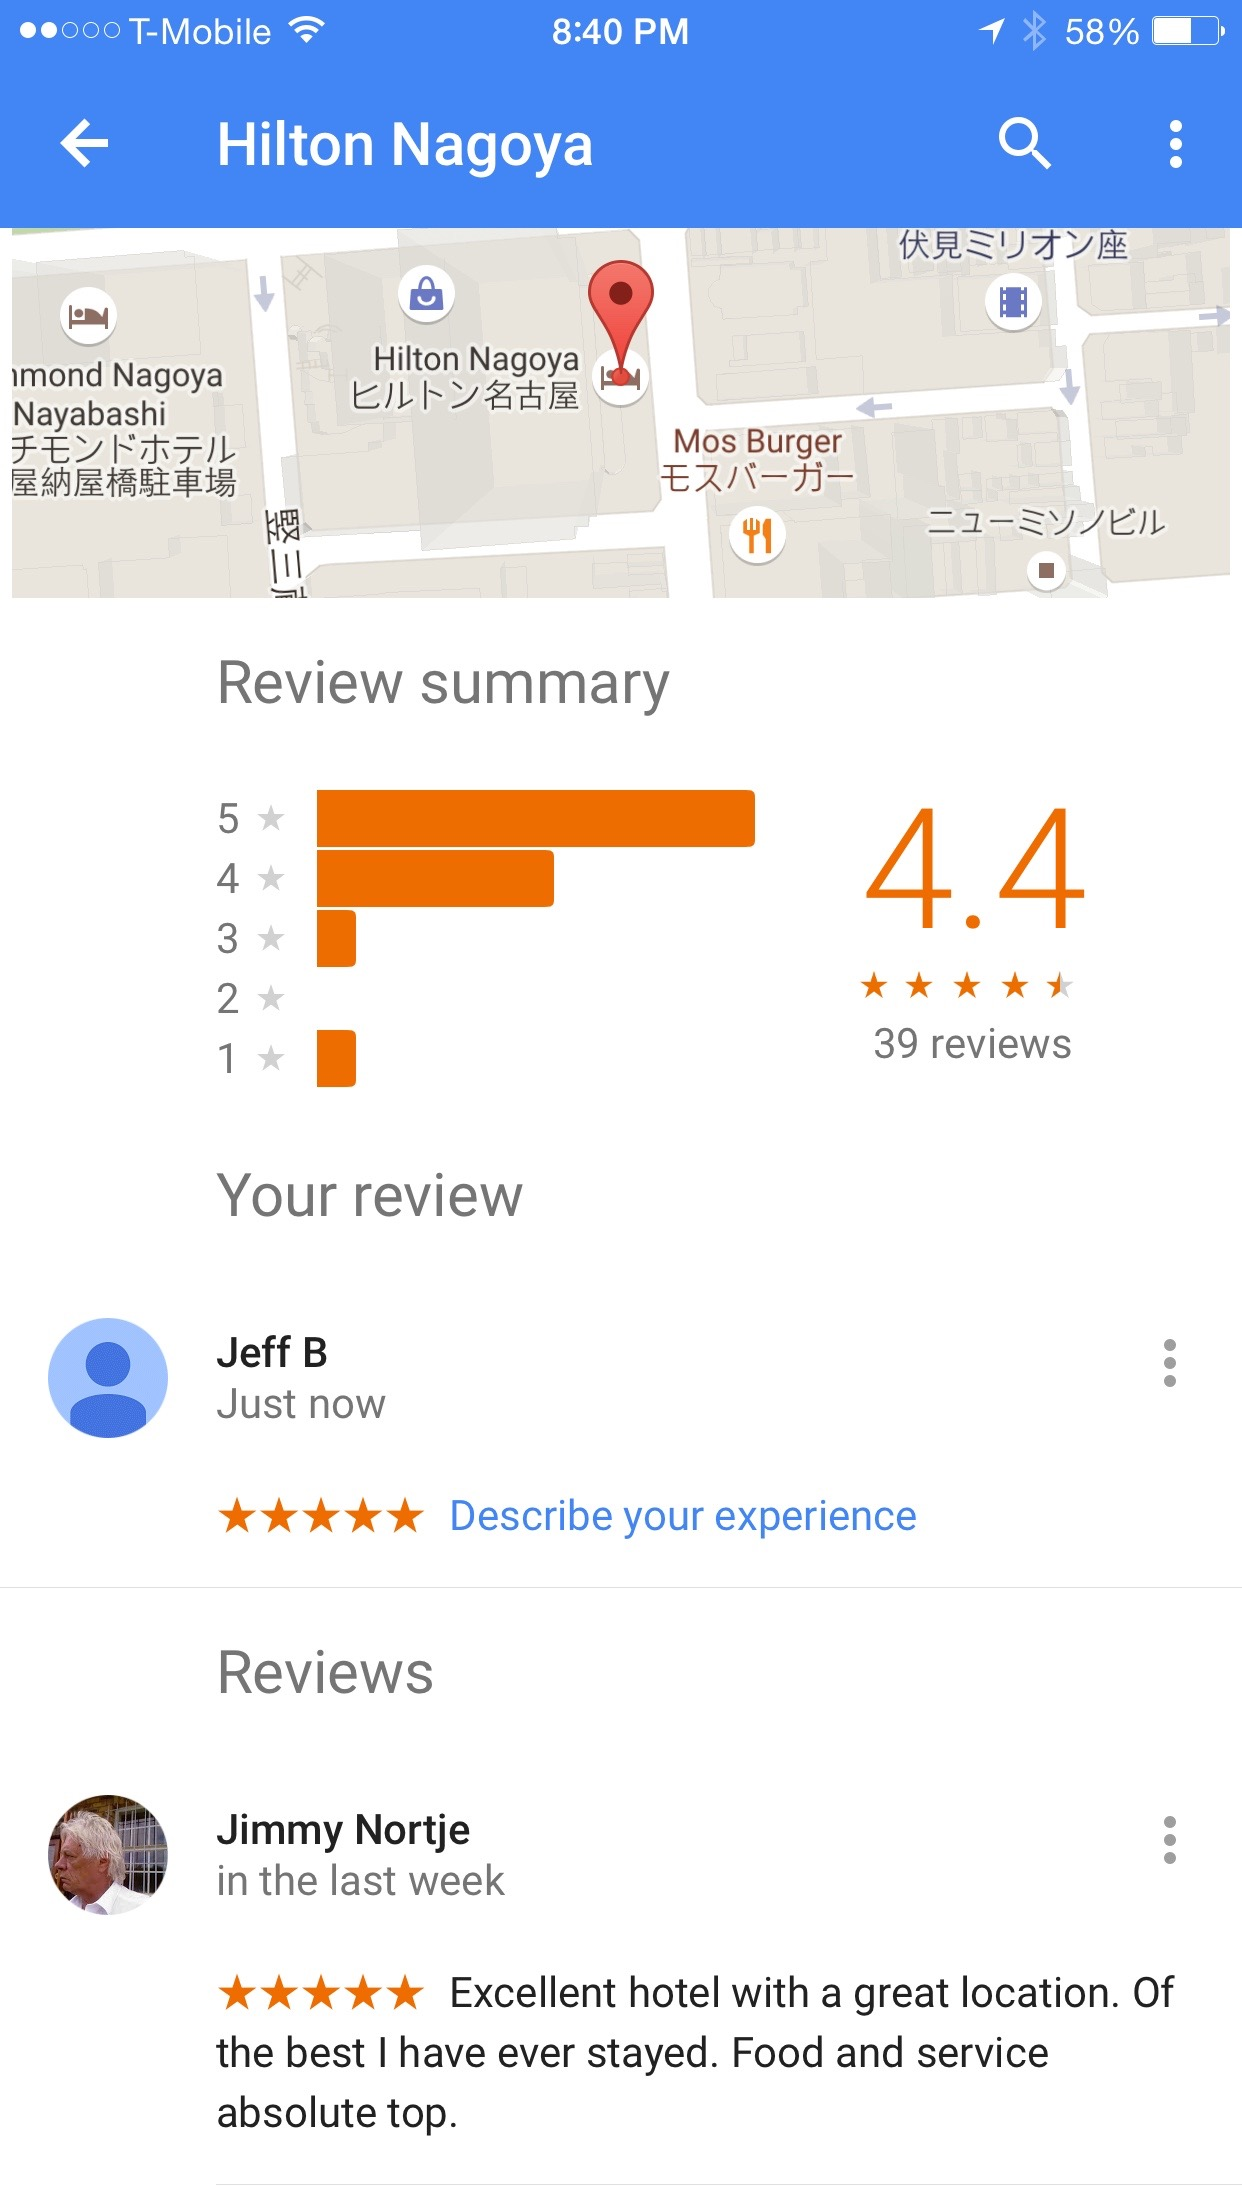 Google Maps Review interface